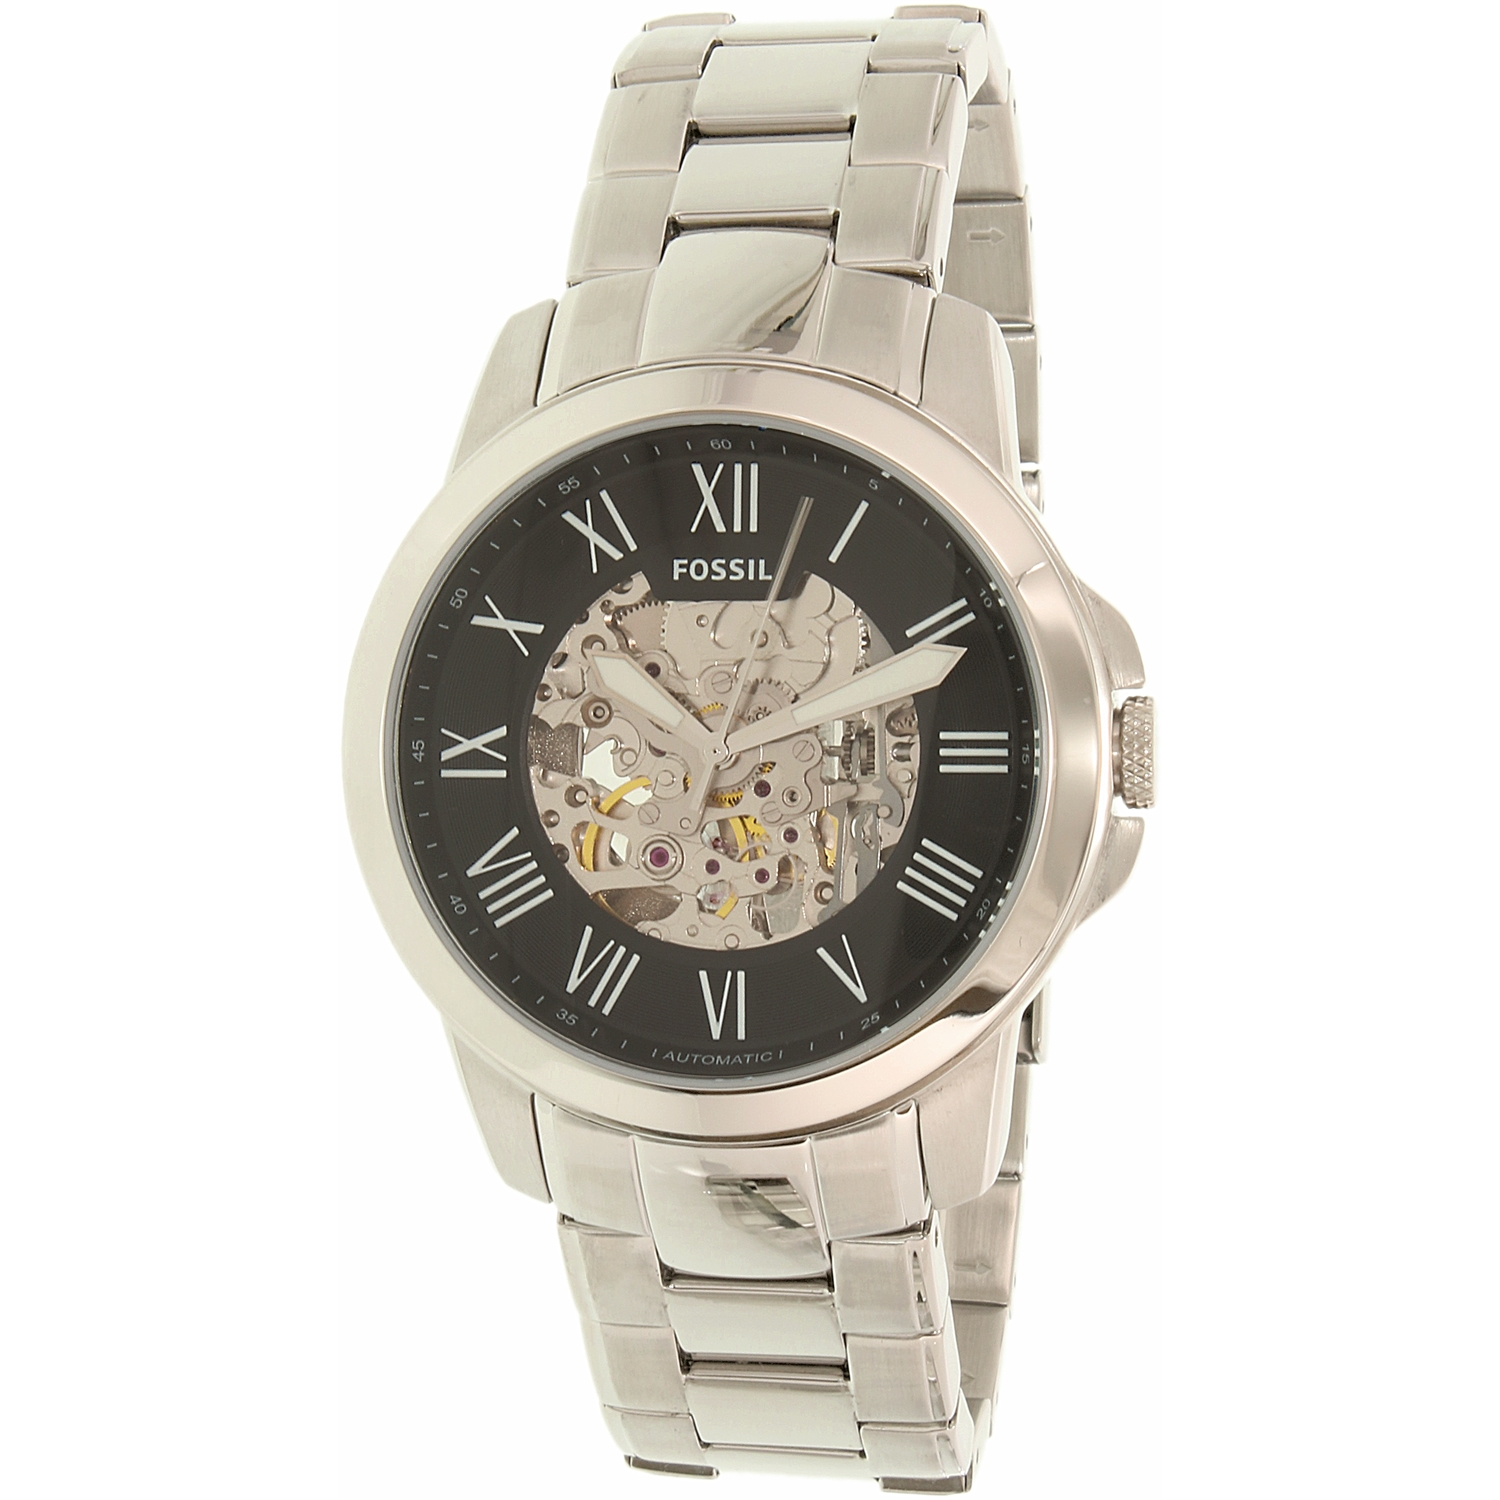 Fossil Men's Grant ME3103 Silver Stainless-Steel Plated Japanese Automatic Dress Watch - image 3 de 3